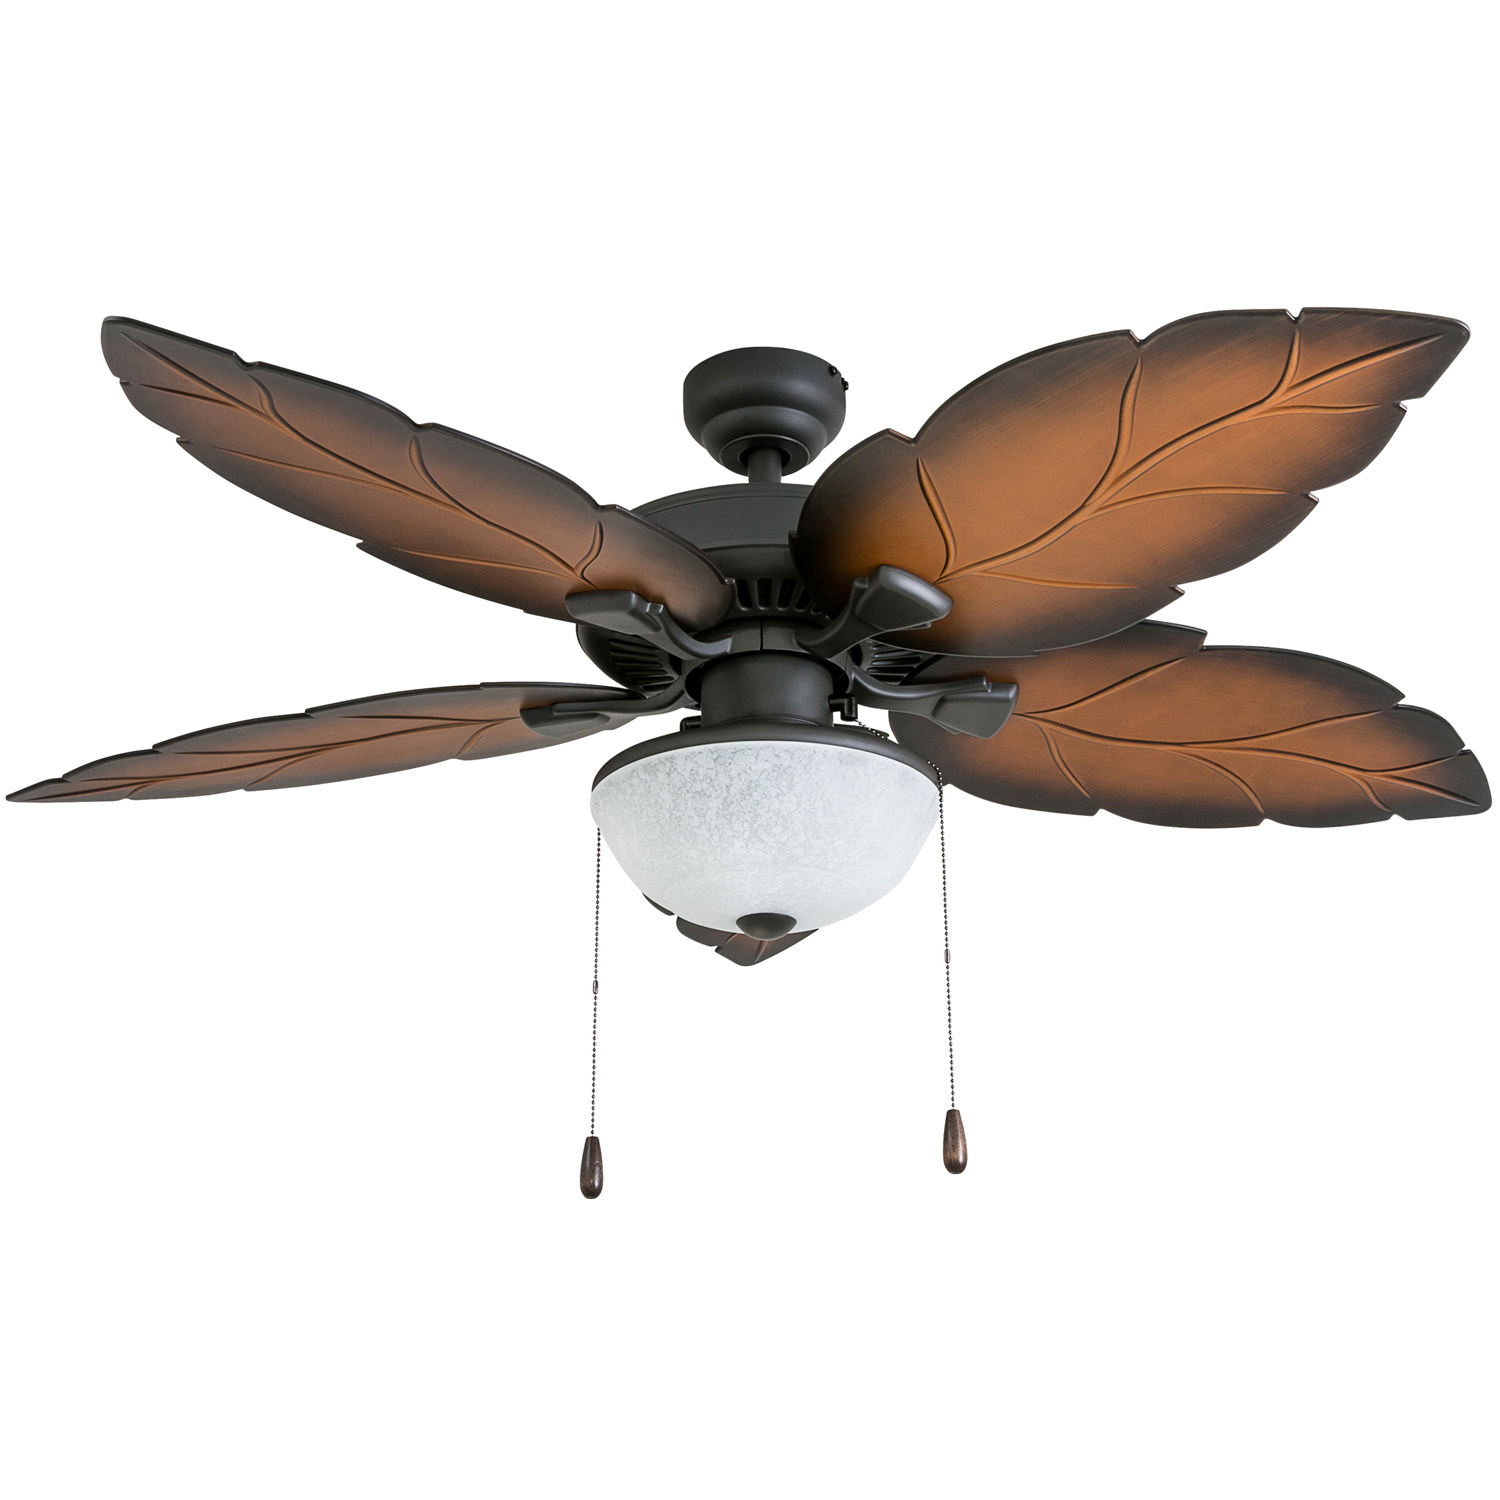 Prominence Home 50797-35 Santorini Tropical 52-Inch Tropical Bronze Damp Rated Ceiling Fan, Bowl Light with Mocha Blades and bluetooth capable remote